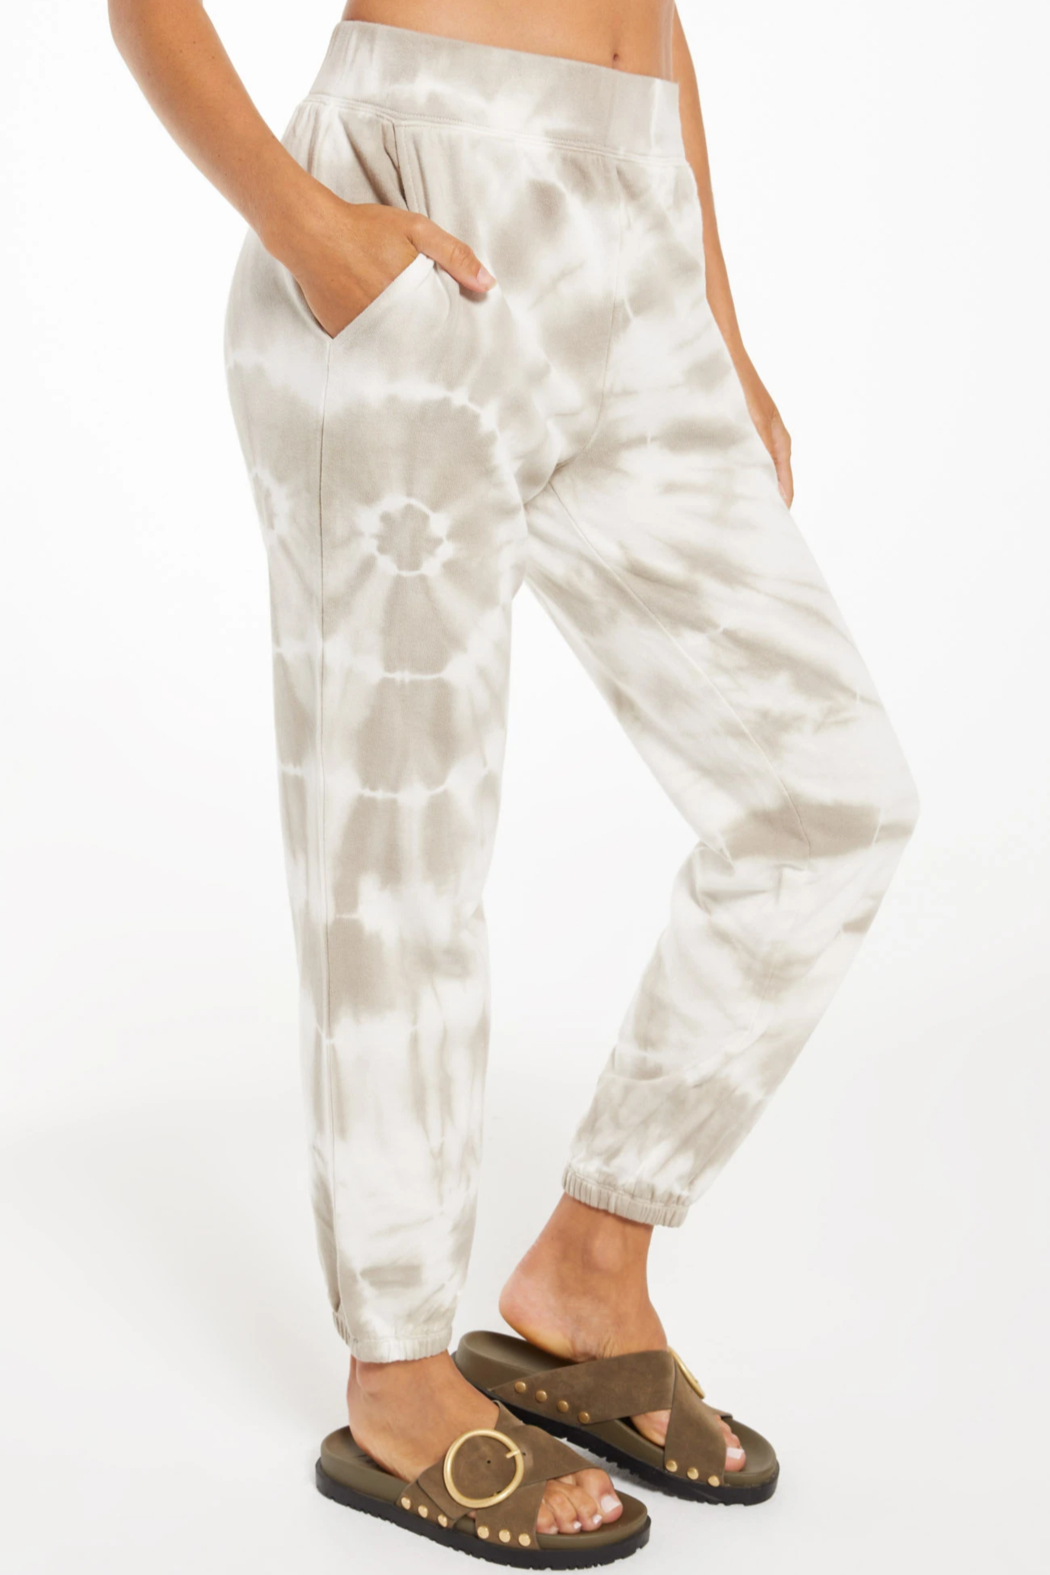 z supply Emery Spiral Tie-Dye Jogger - Back Cropped Image